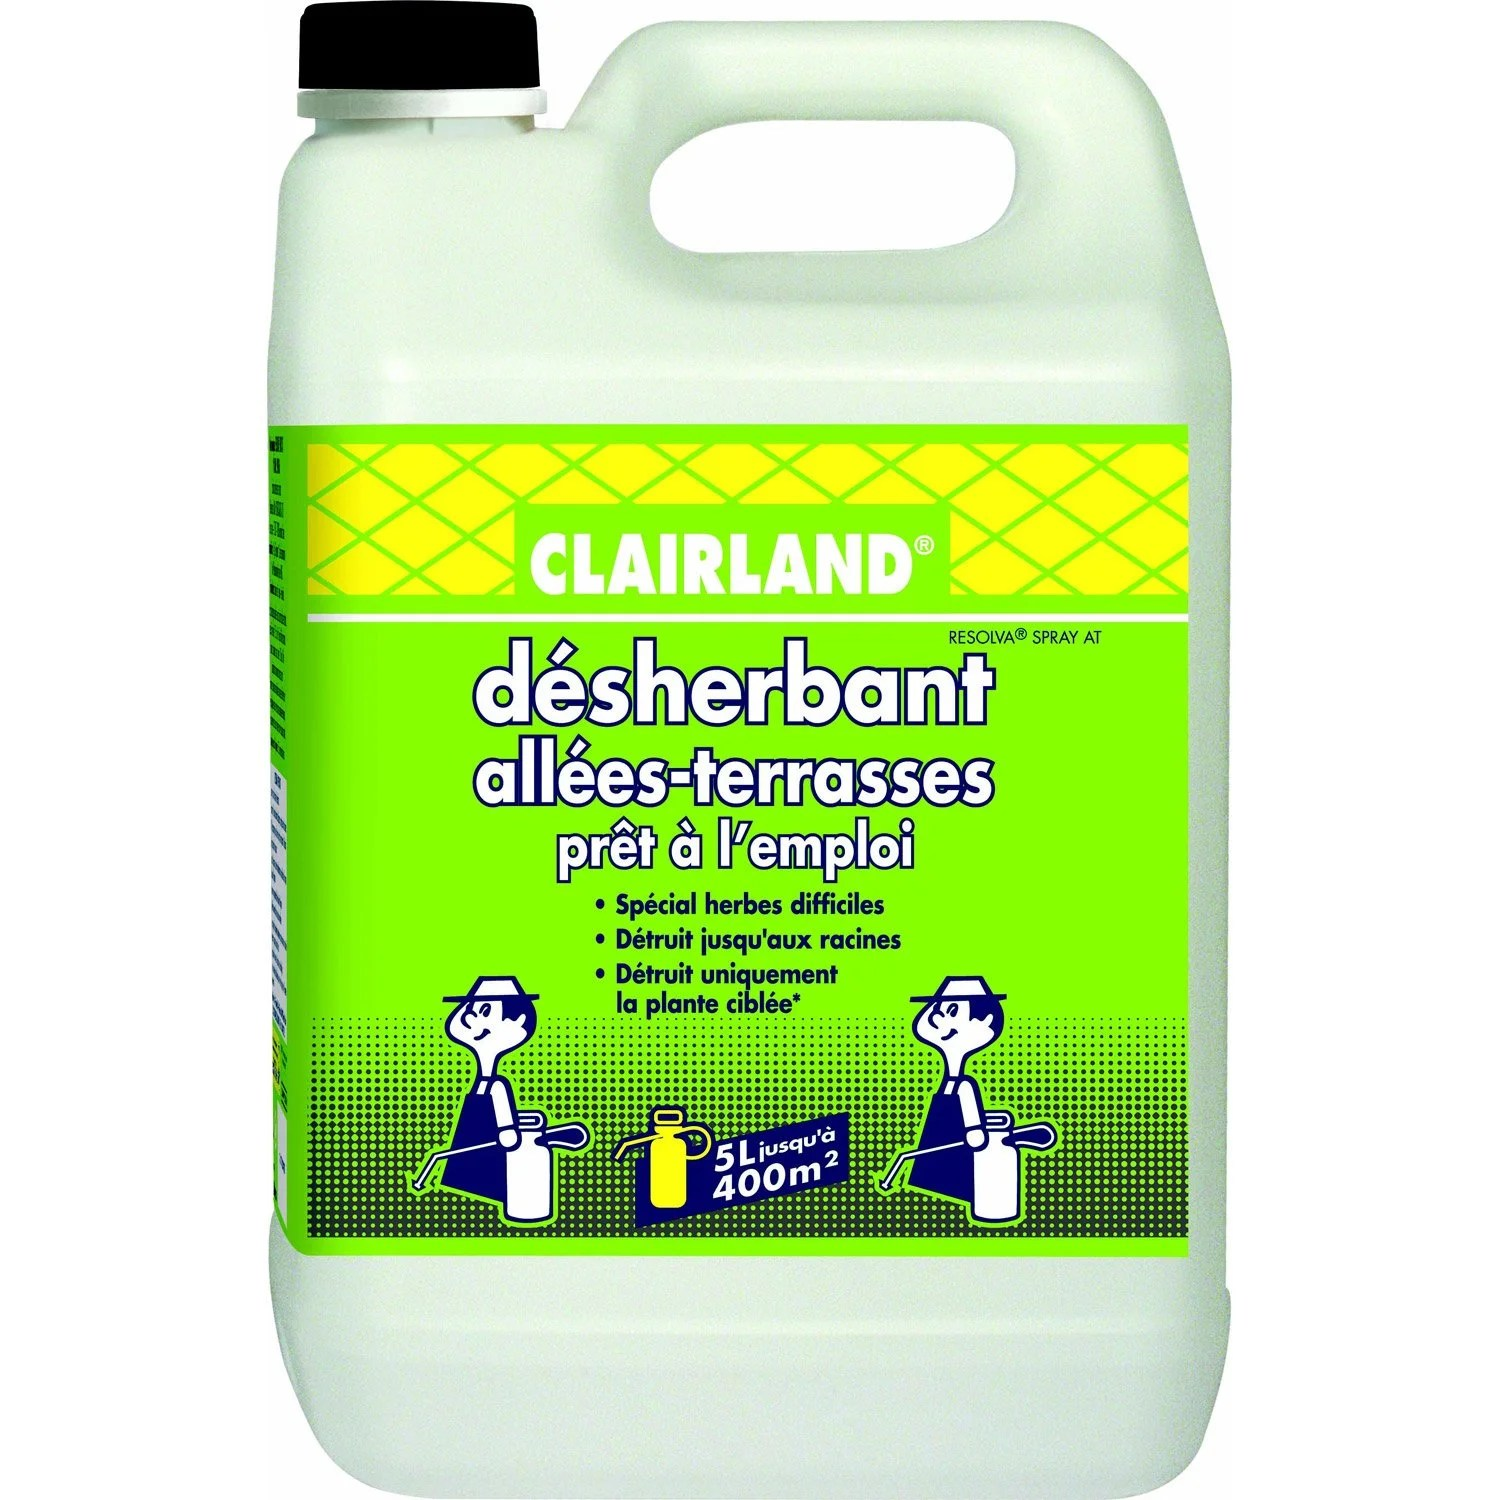 Desherbant Leroy Merlin D Sherbant Gazon Clairland 5l Leroy Merlin Black Bedroom